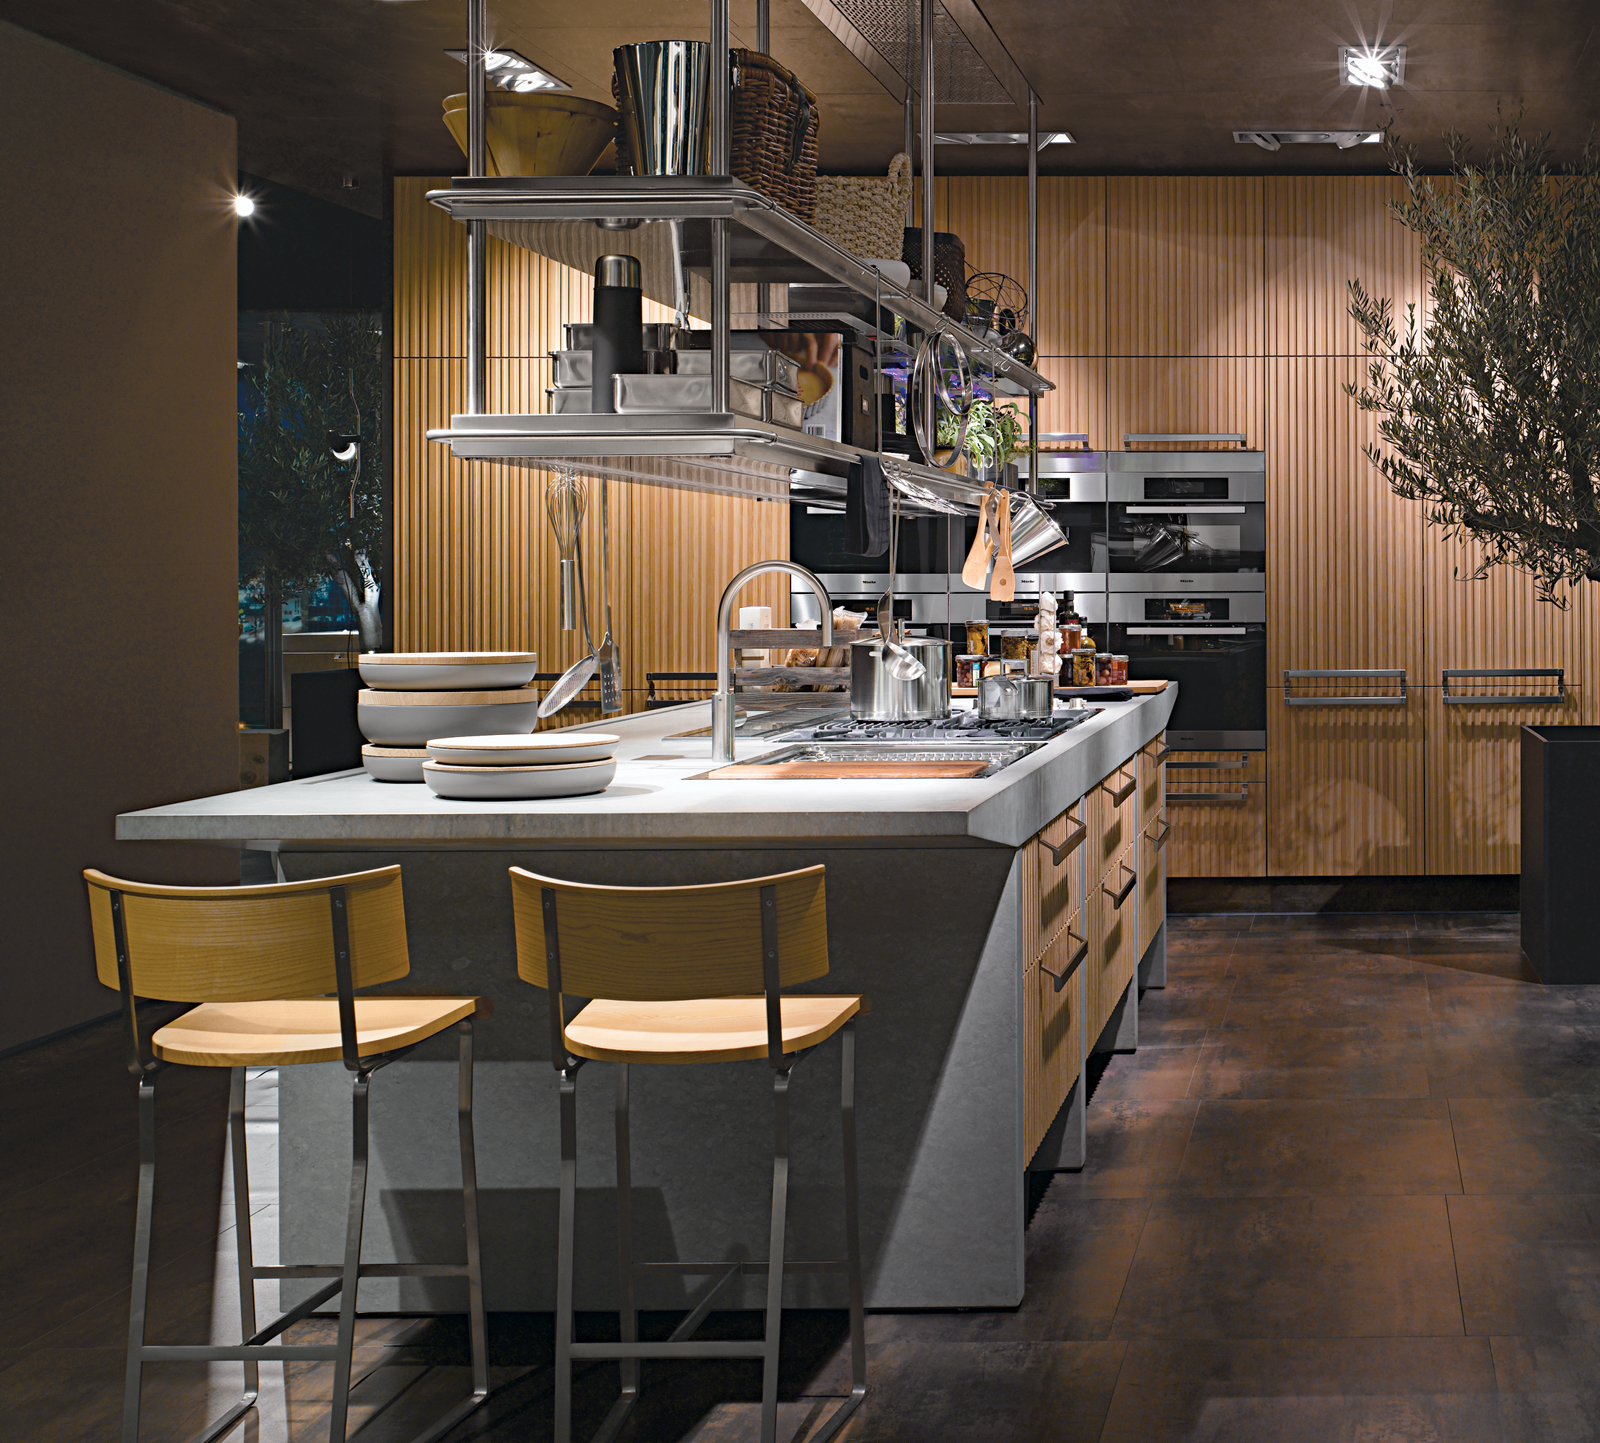 Arclinea's Lignum and Lapis kitchen system features green materials, professional-grade appliances, and advanced technology like a miniature greenhouse for growing herbs indoors and a retractable glass hood over the cooktop.